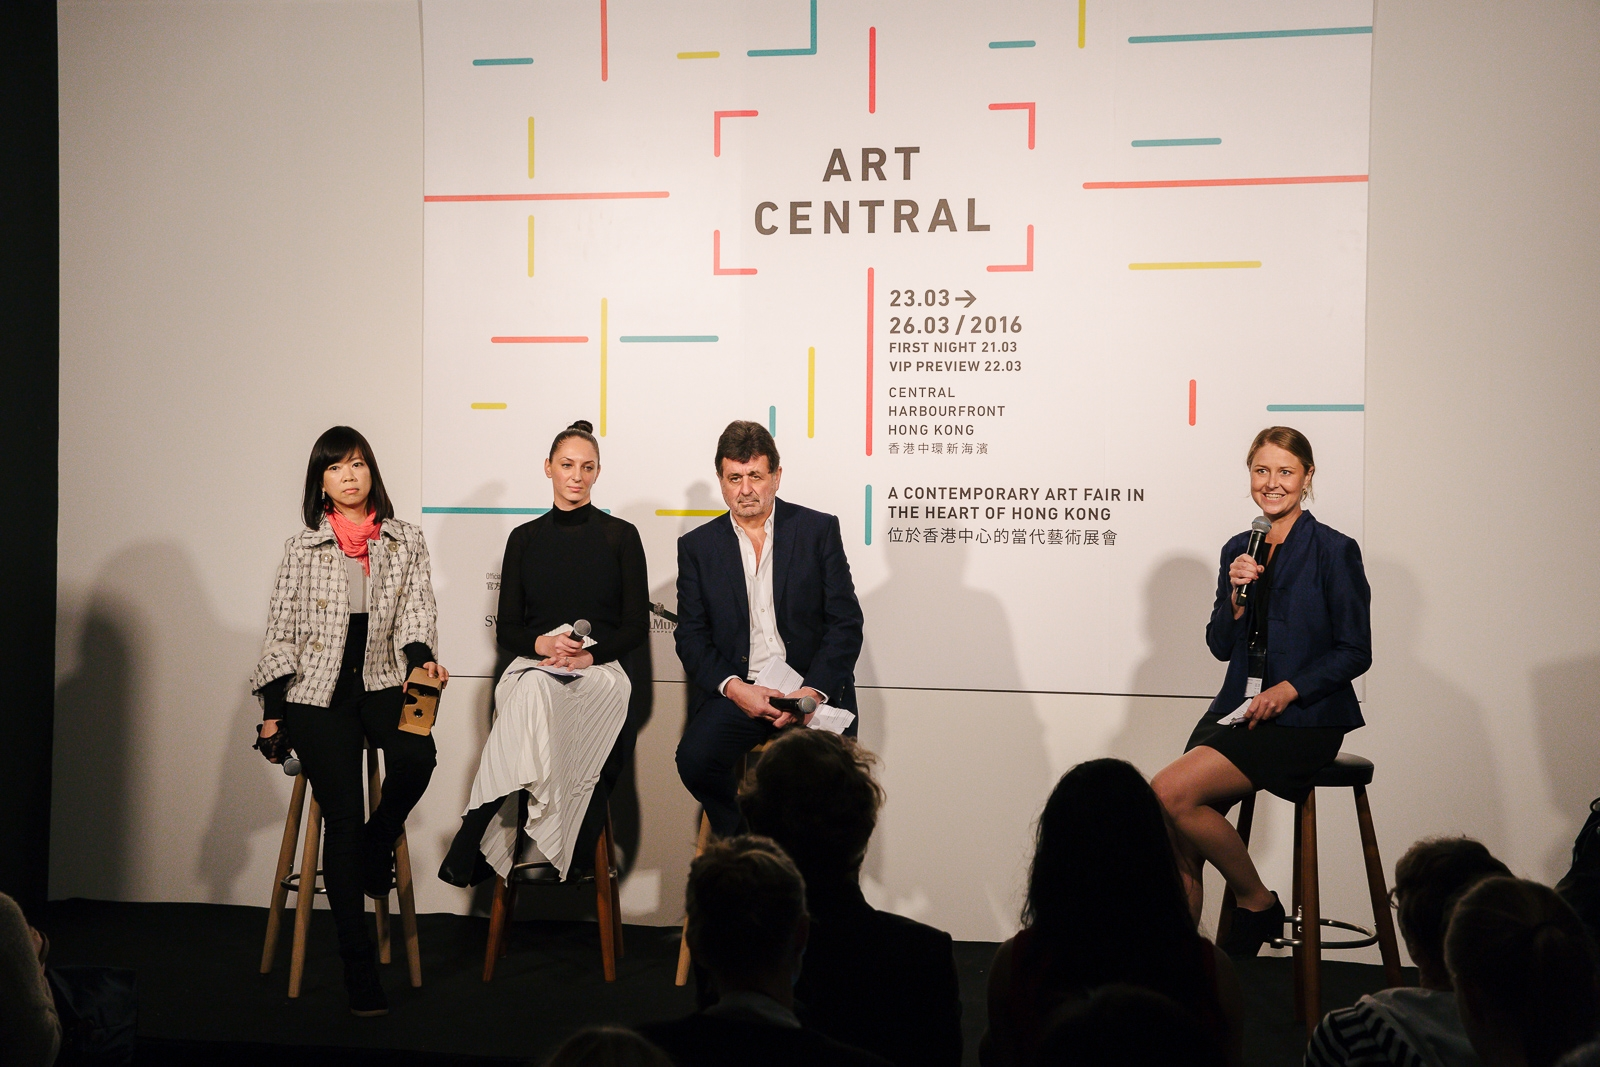 Art Central 2016 Press Conference - (From left to right) Gina Wong - Experimenta, Maree Di Pasquale - Fair Director, Tim Etchells - Fair Co-Founder, Kiri Sinclair - Sinclair Communications